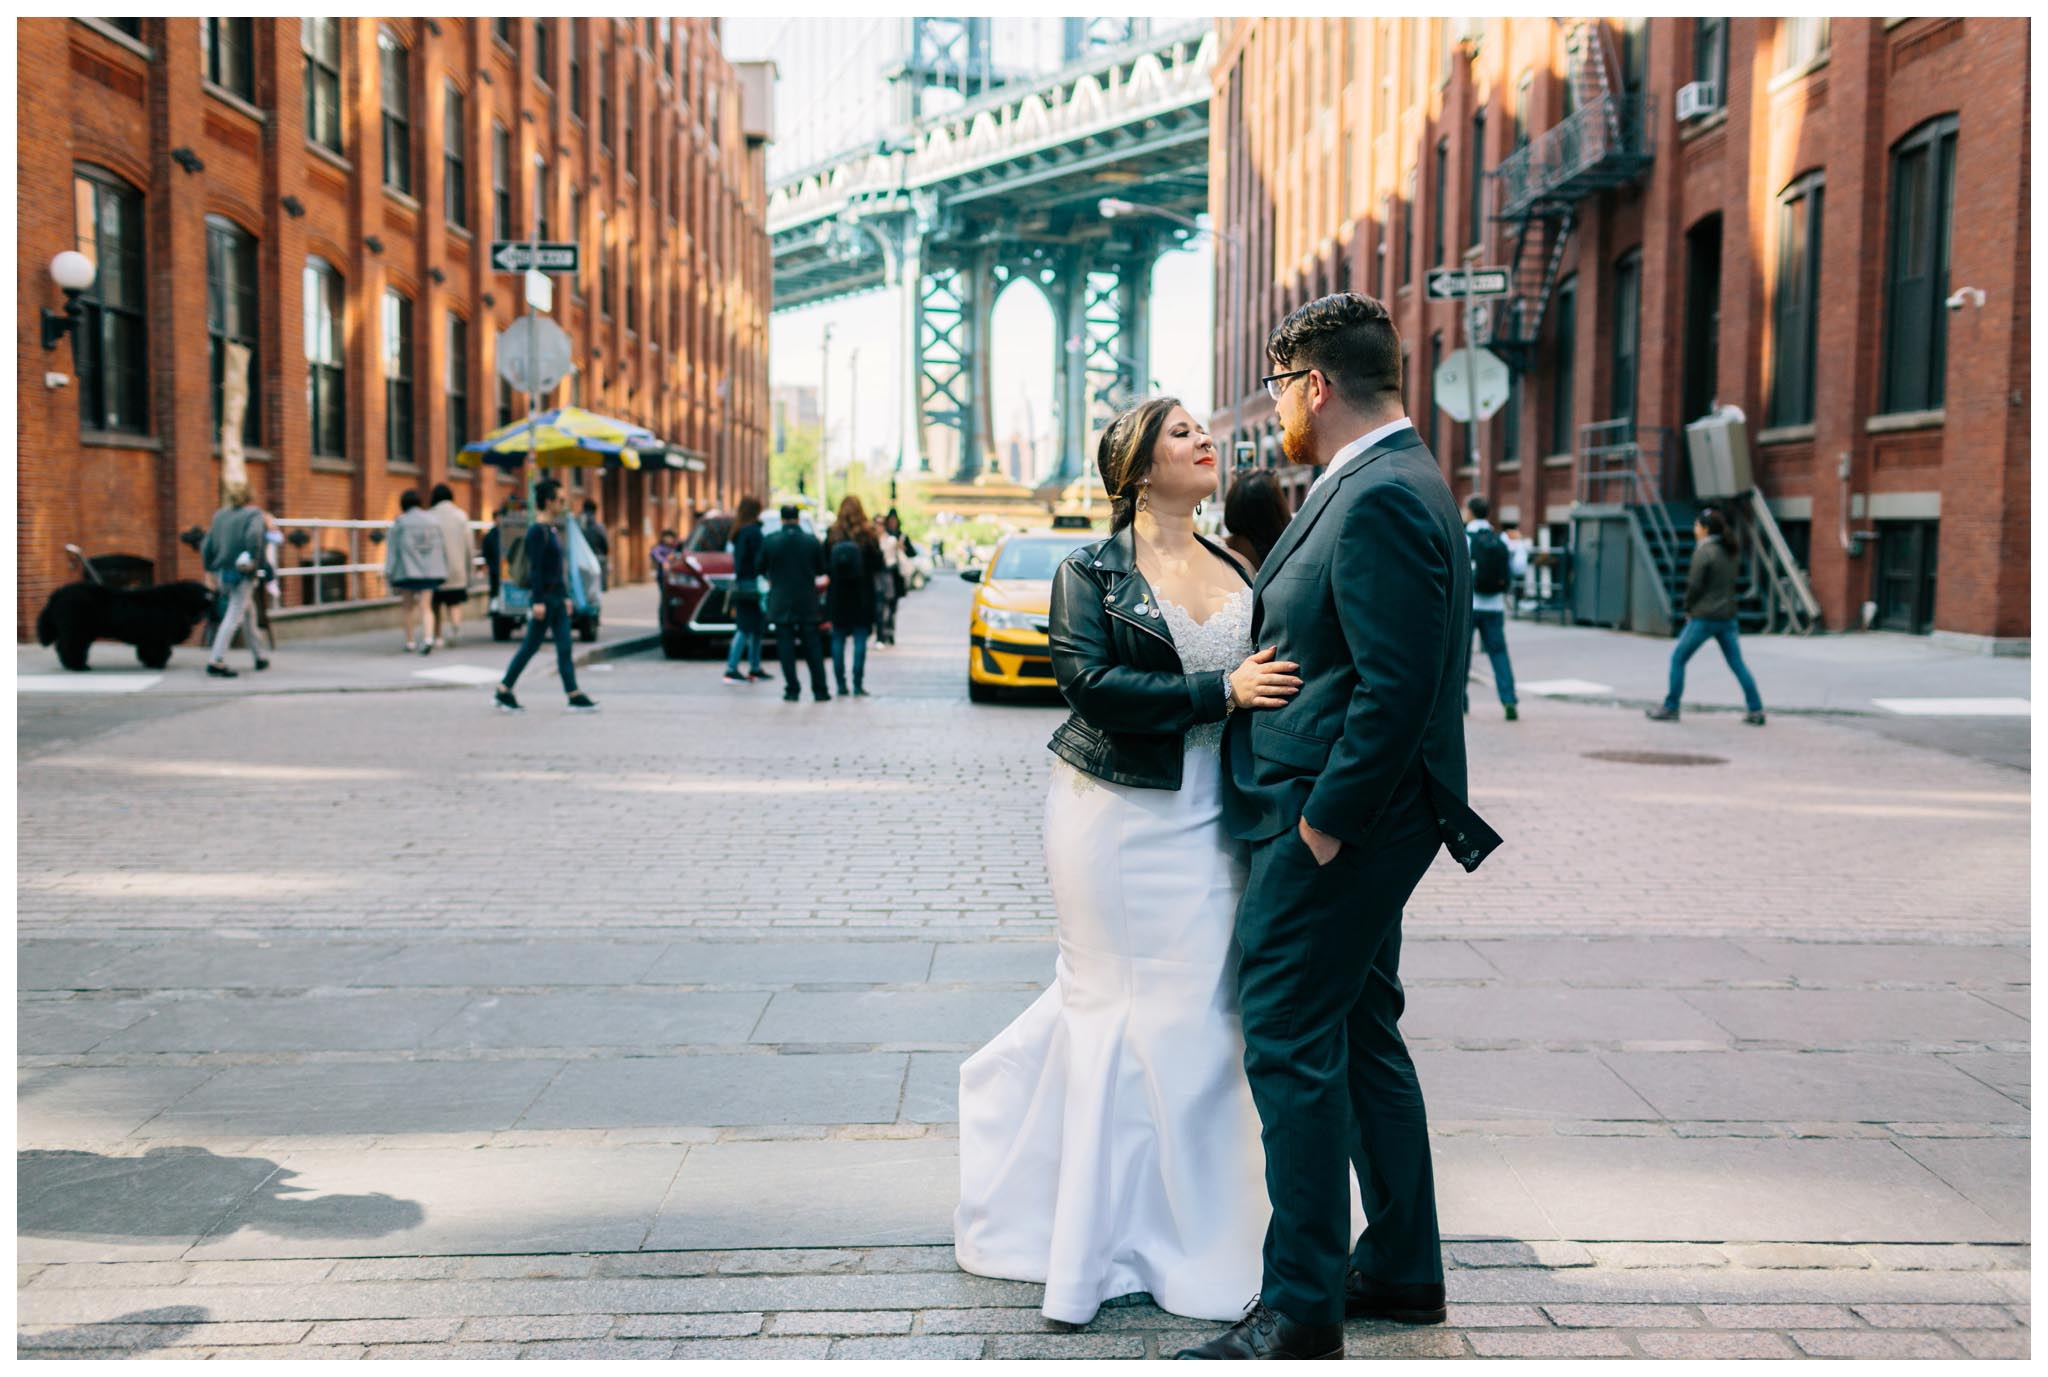 Brooklyn Bridge, wedding